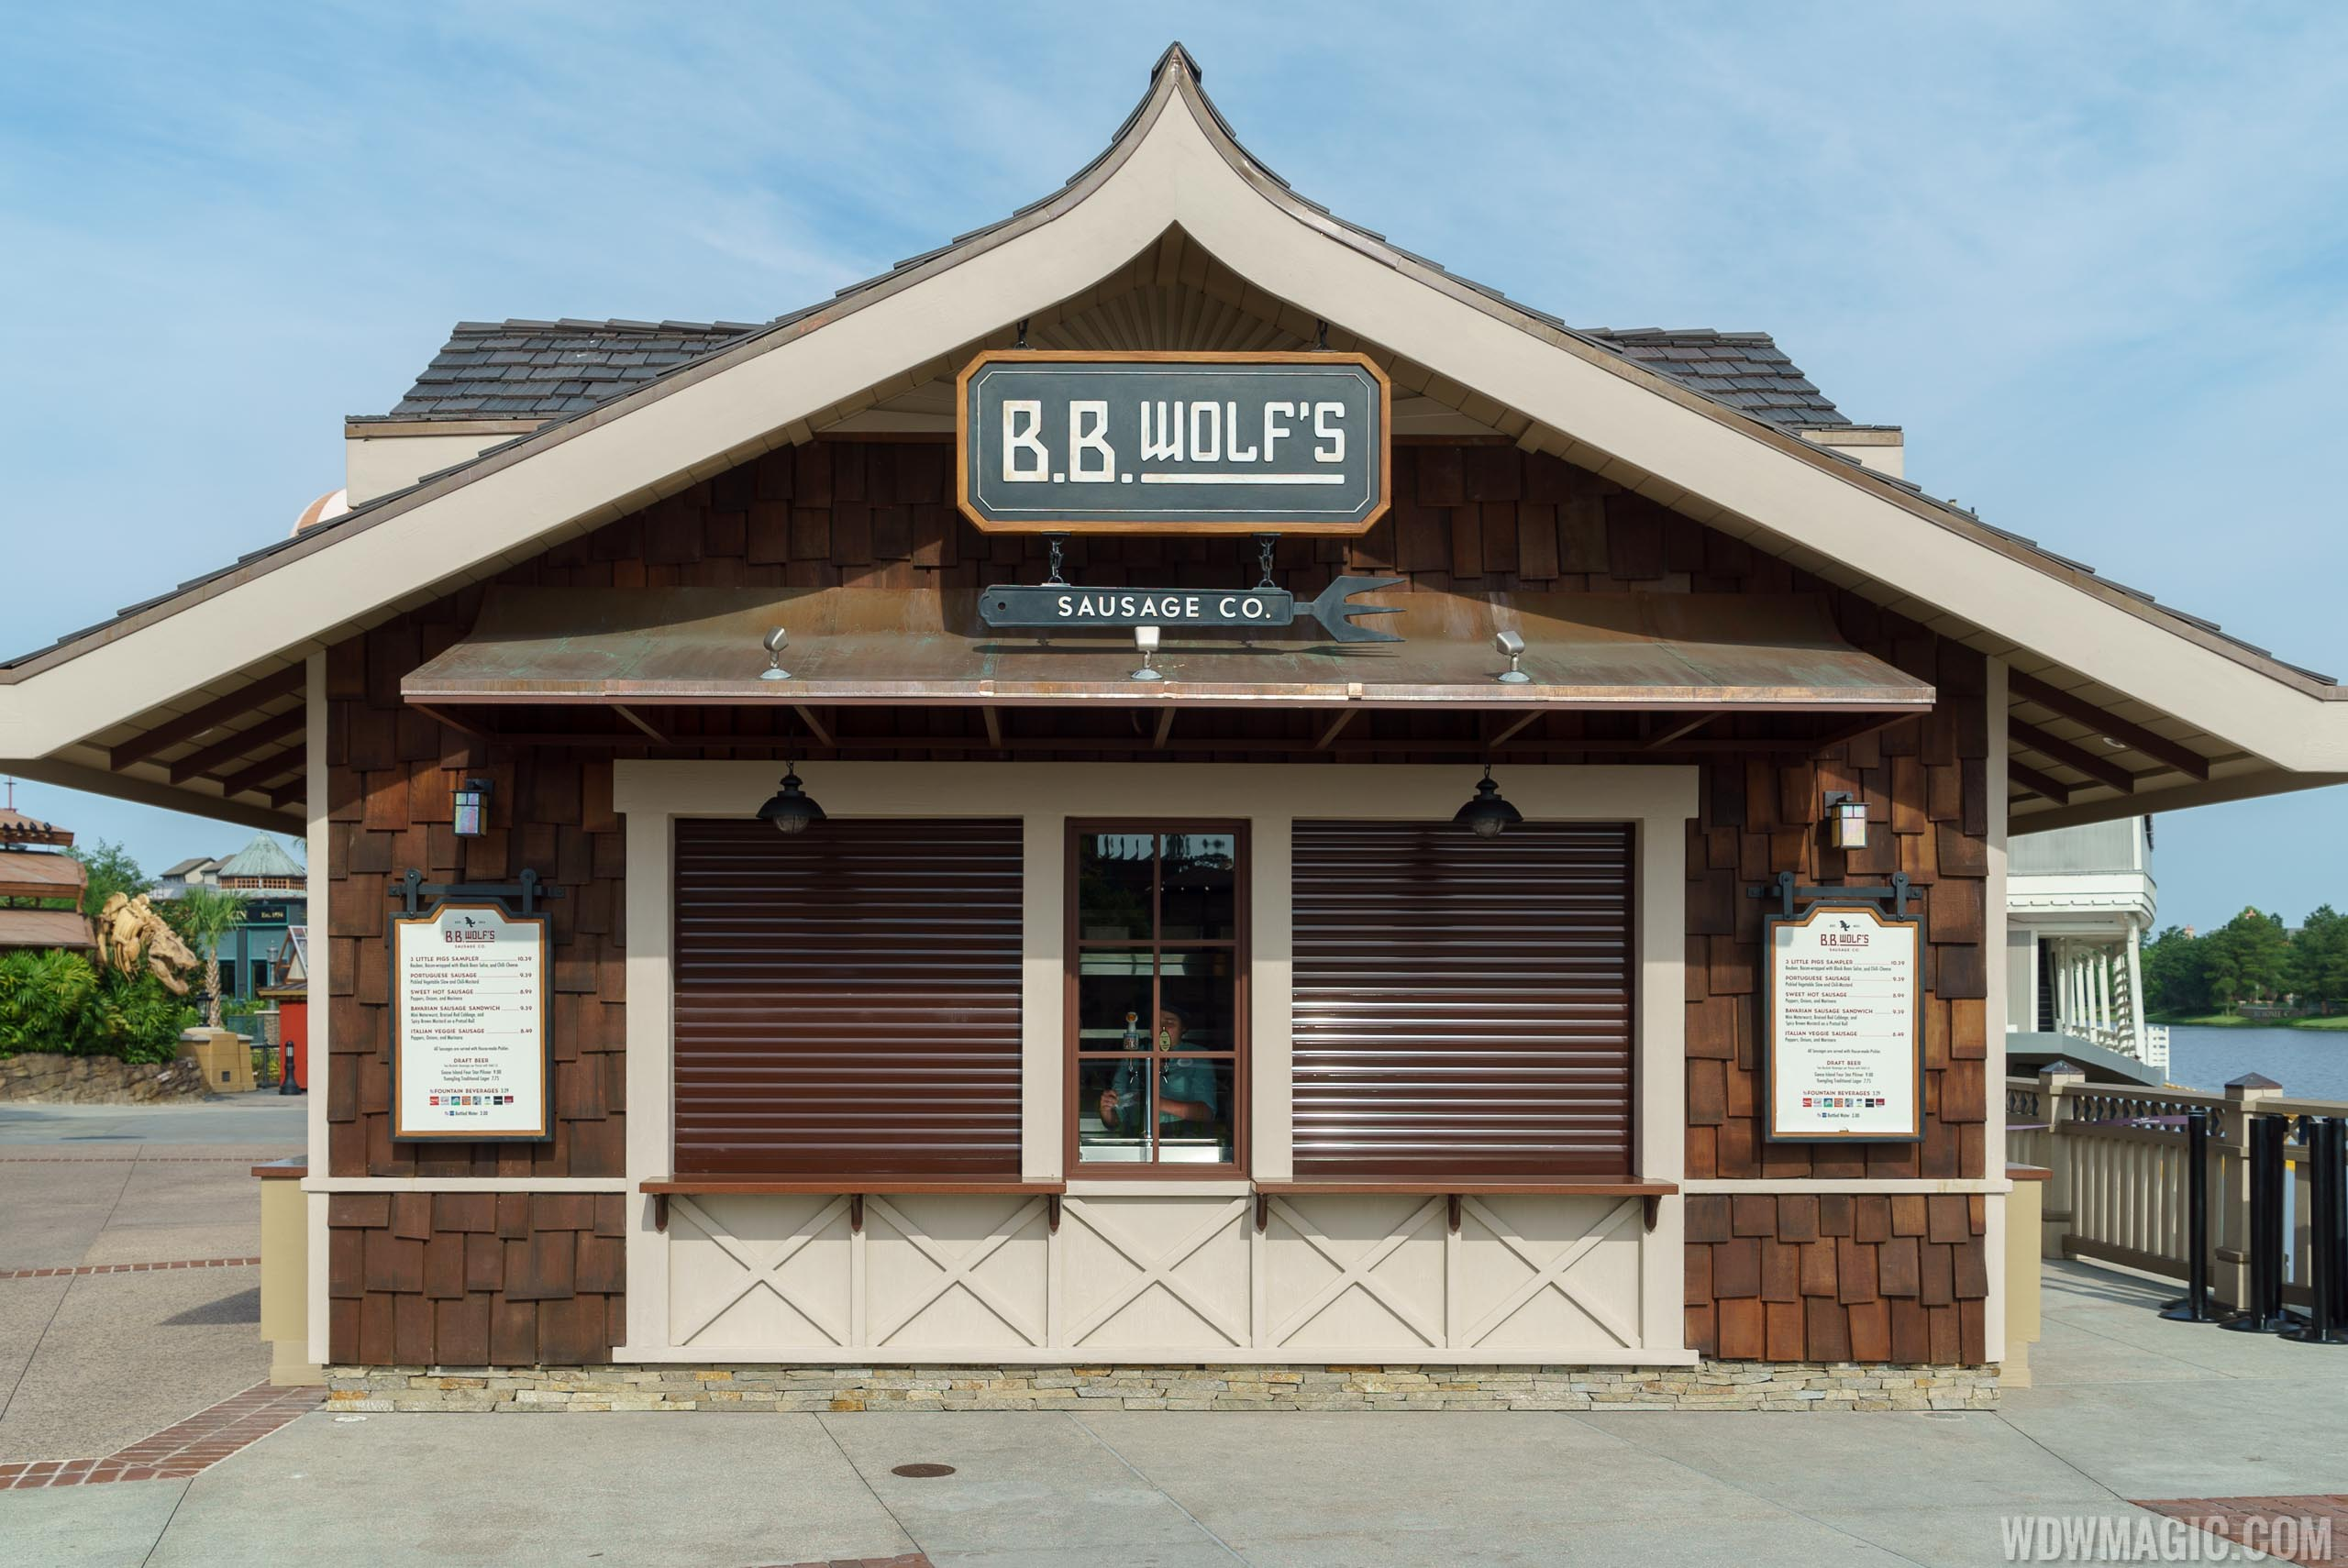 B.B. Wolf's Sausage Co. overview